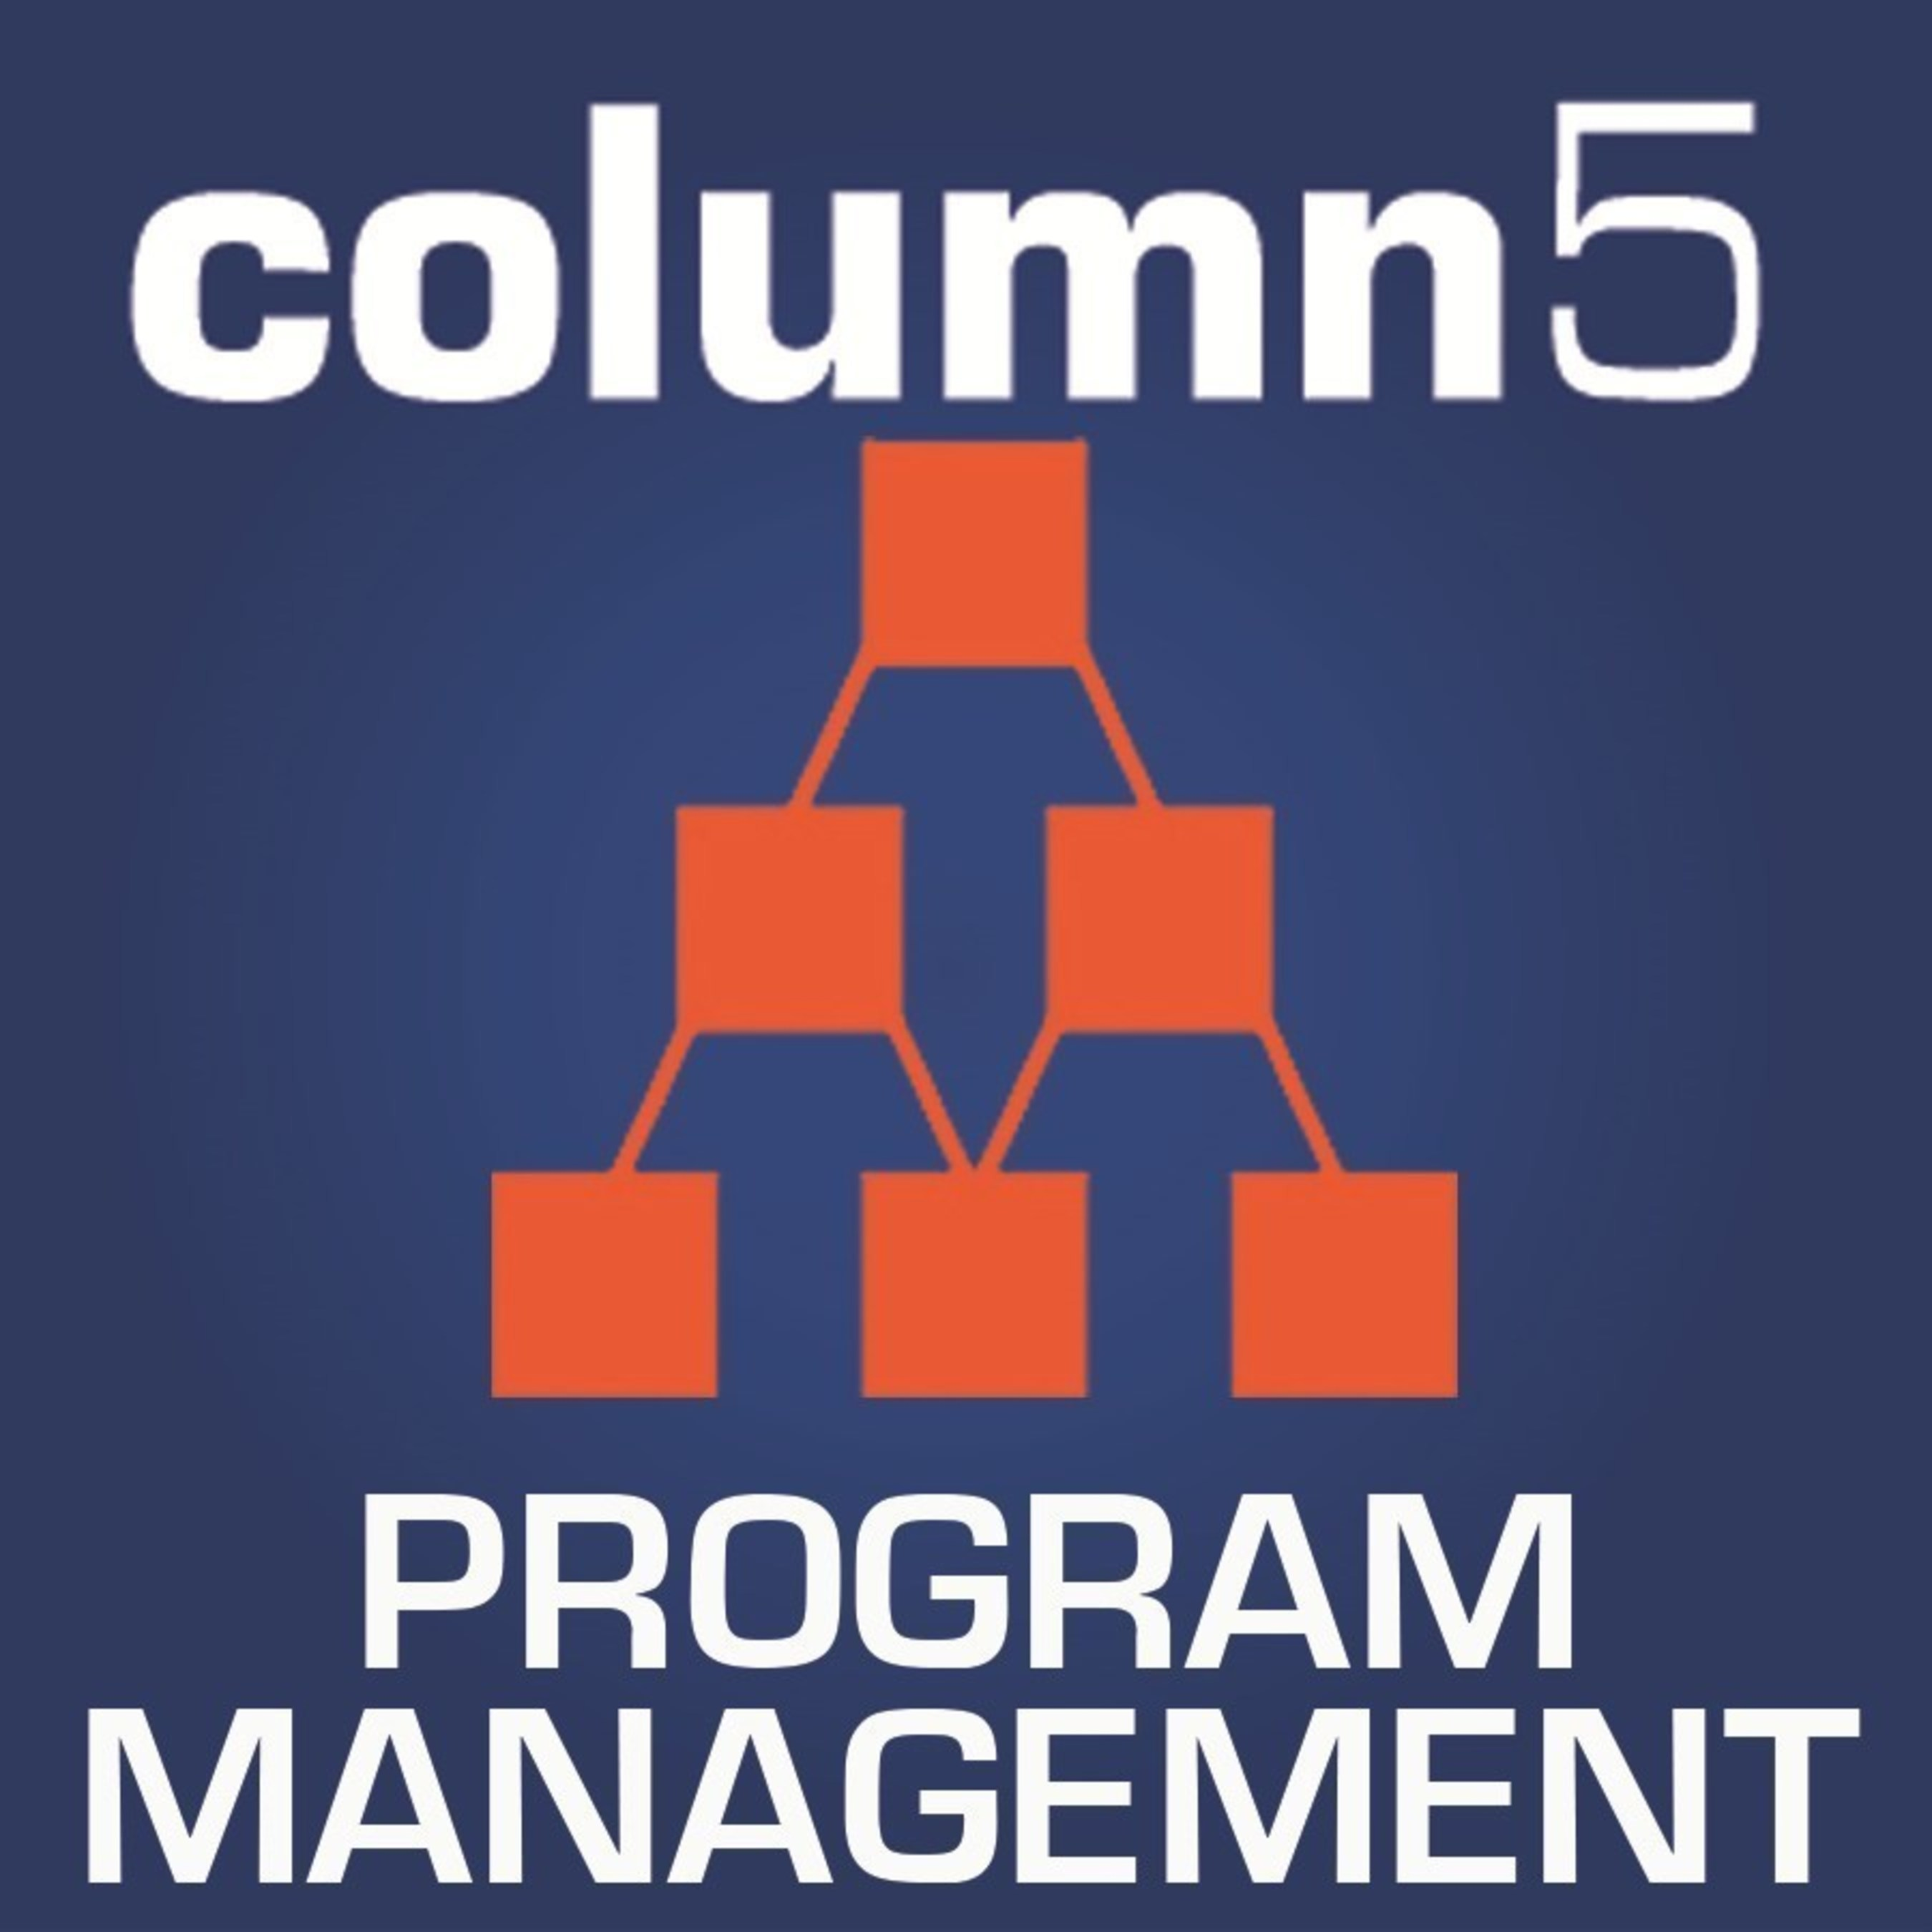 Column5 Consulting, an SAP partner, today announced that it has received accreditation for a global partner quality program by SAP SE for the 5th consecutive year.